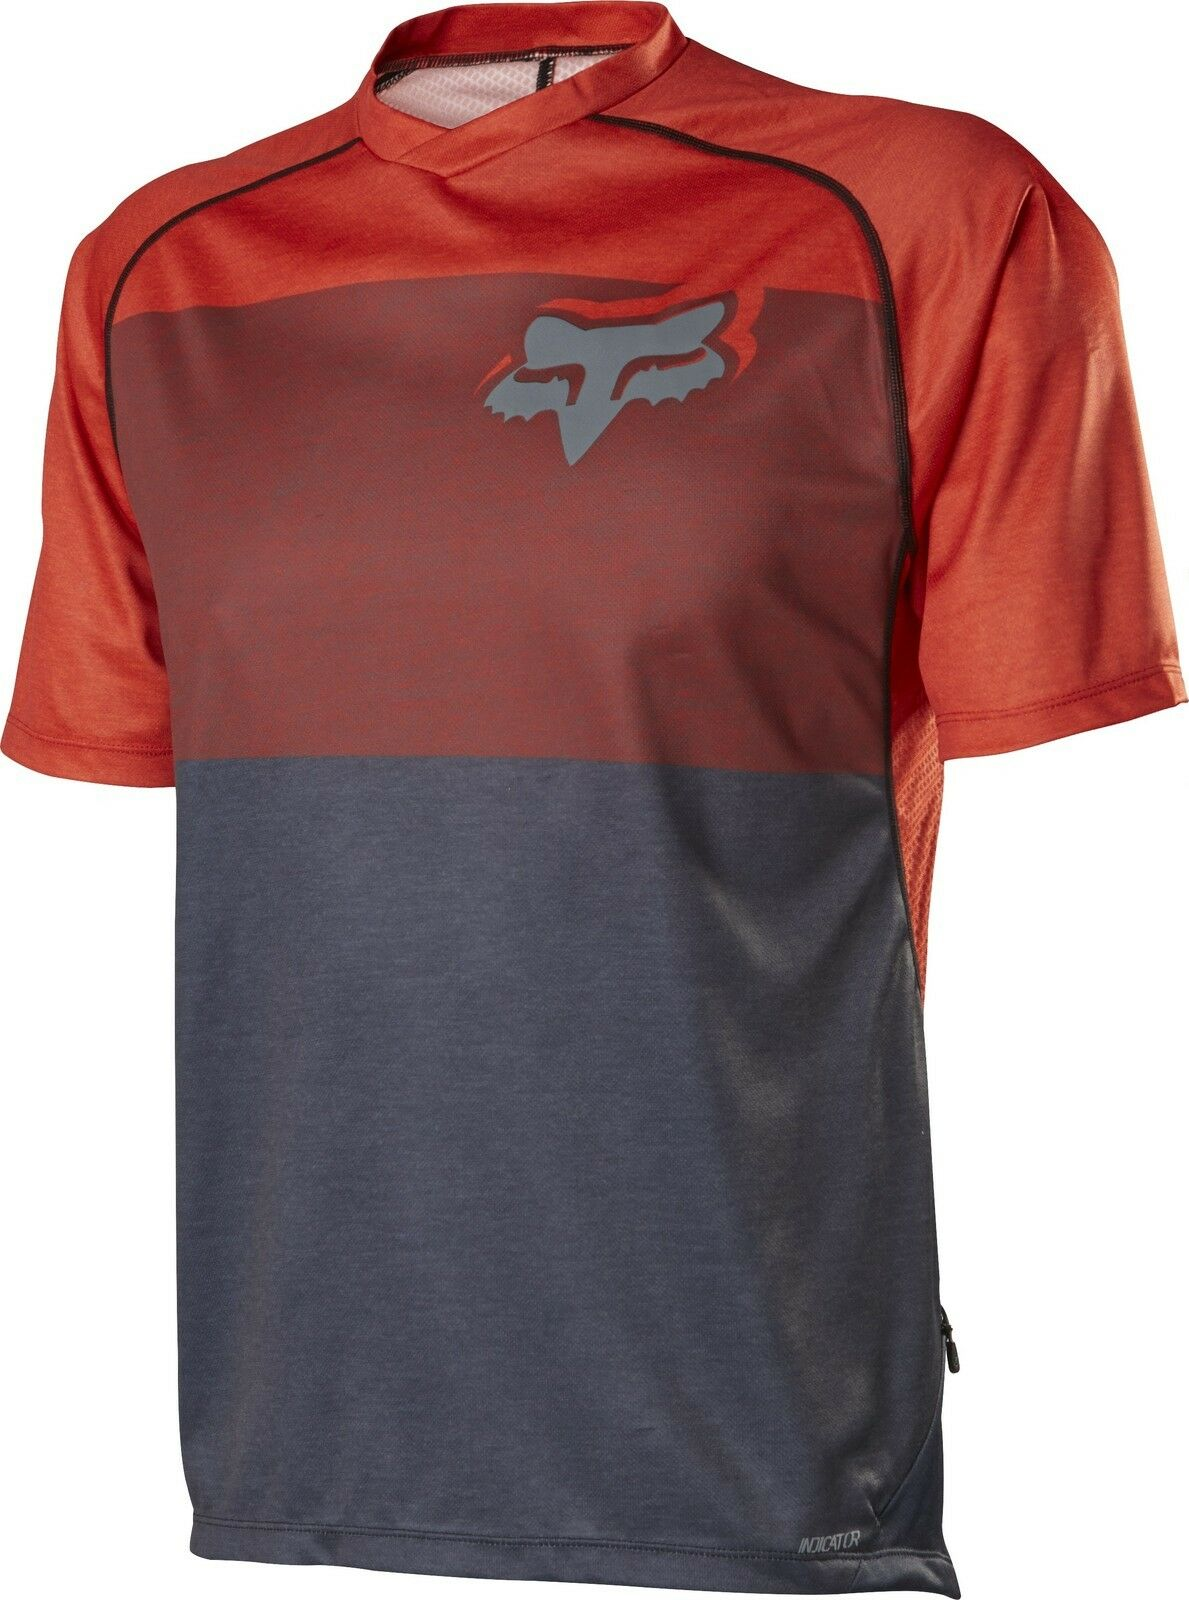 Fox Racing Indicator s s Jersey orange